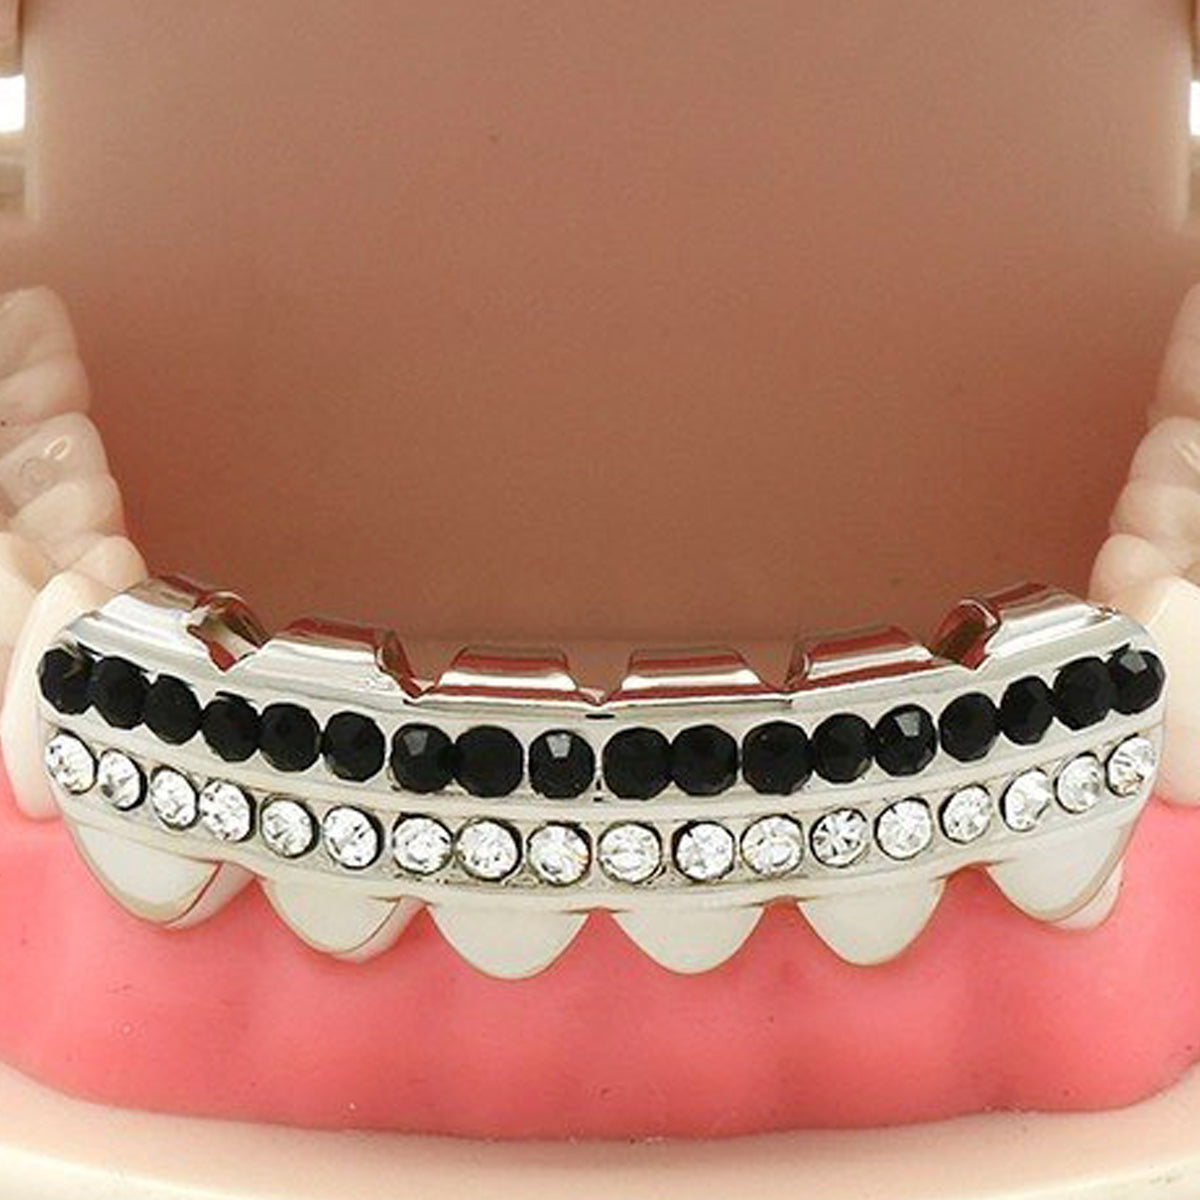 SILVER BOTTOM GRILLZ 2 ROW BLACK